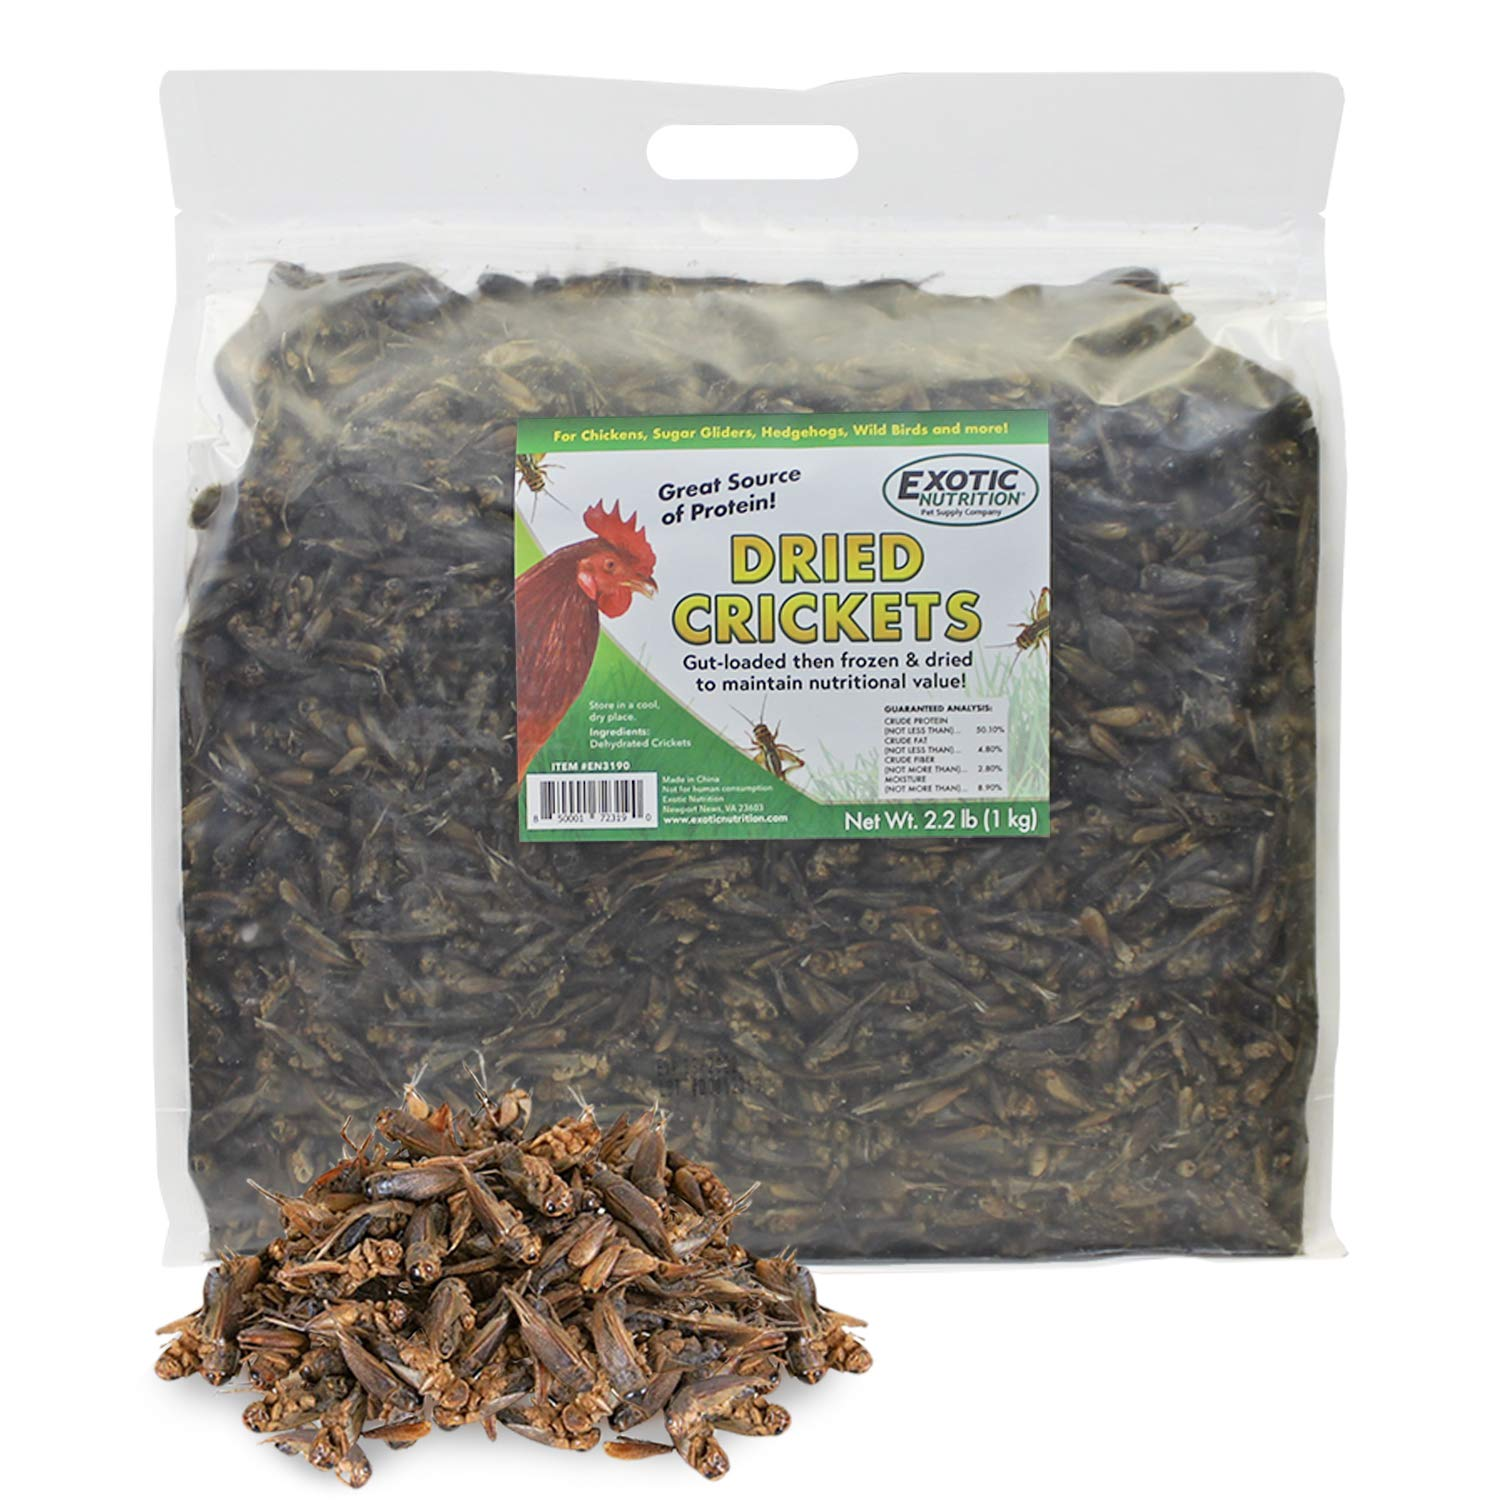 Dried Crickets (2.2 lb.) - High Protein Insect Treat - Chickens, Wild Birds, Hedgehogs, Bluebirds, Reptiles, Sugar Gliders, Opossums, Skunks, Lizards, Bearded Dragons, Fish, Amphibians, Turtles by Exotic Nutrition